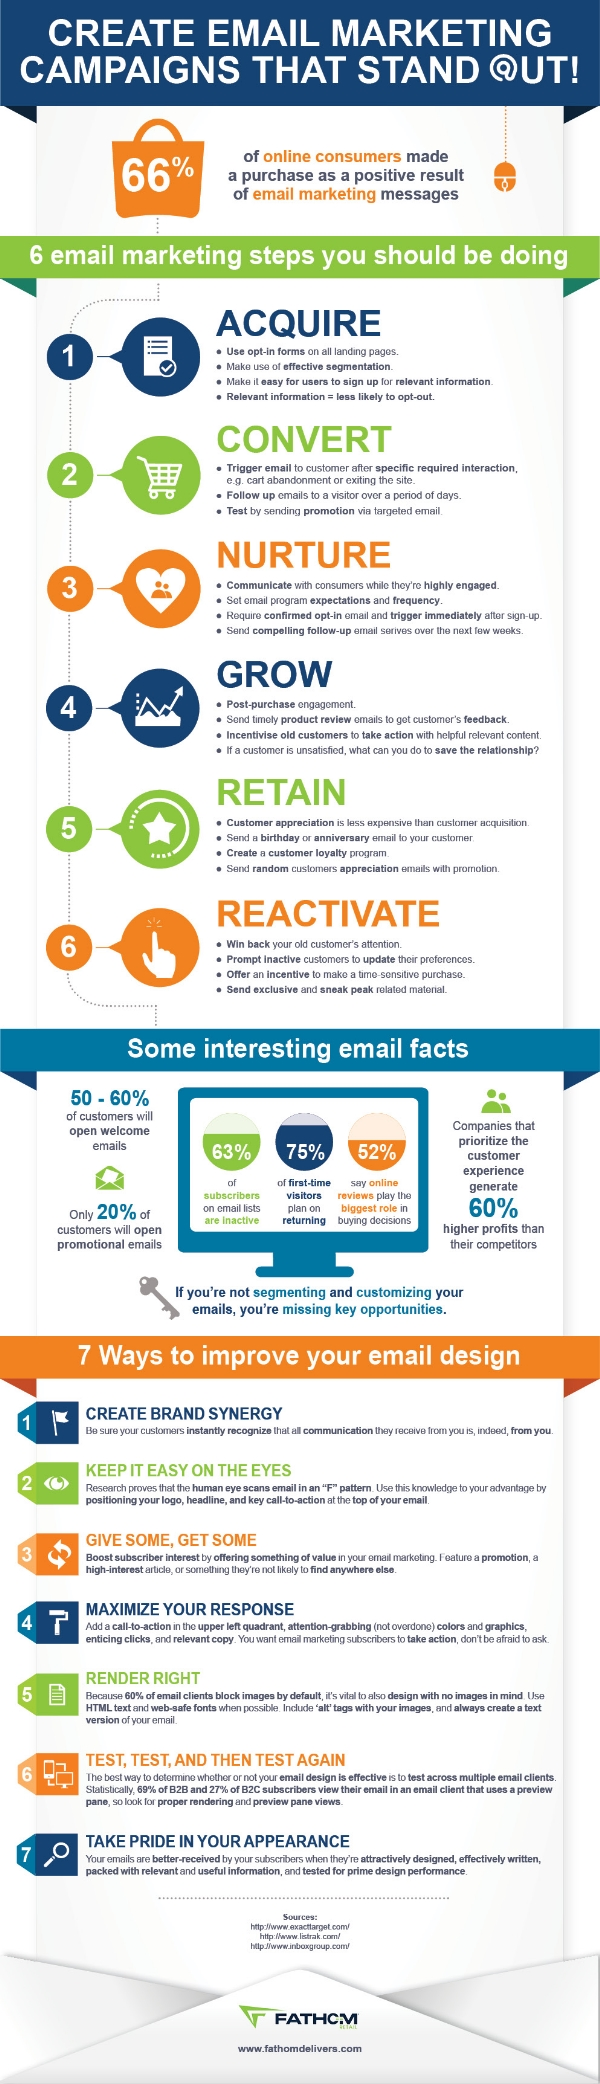 EmailMarketingInfographic